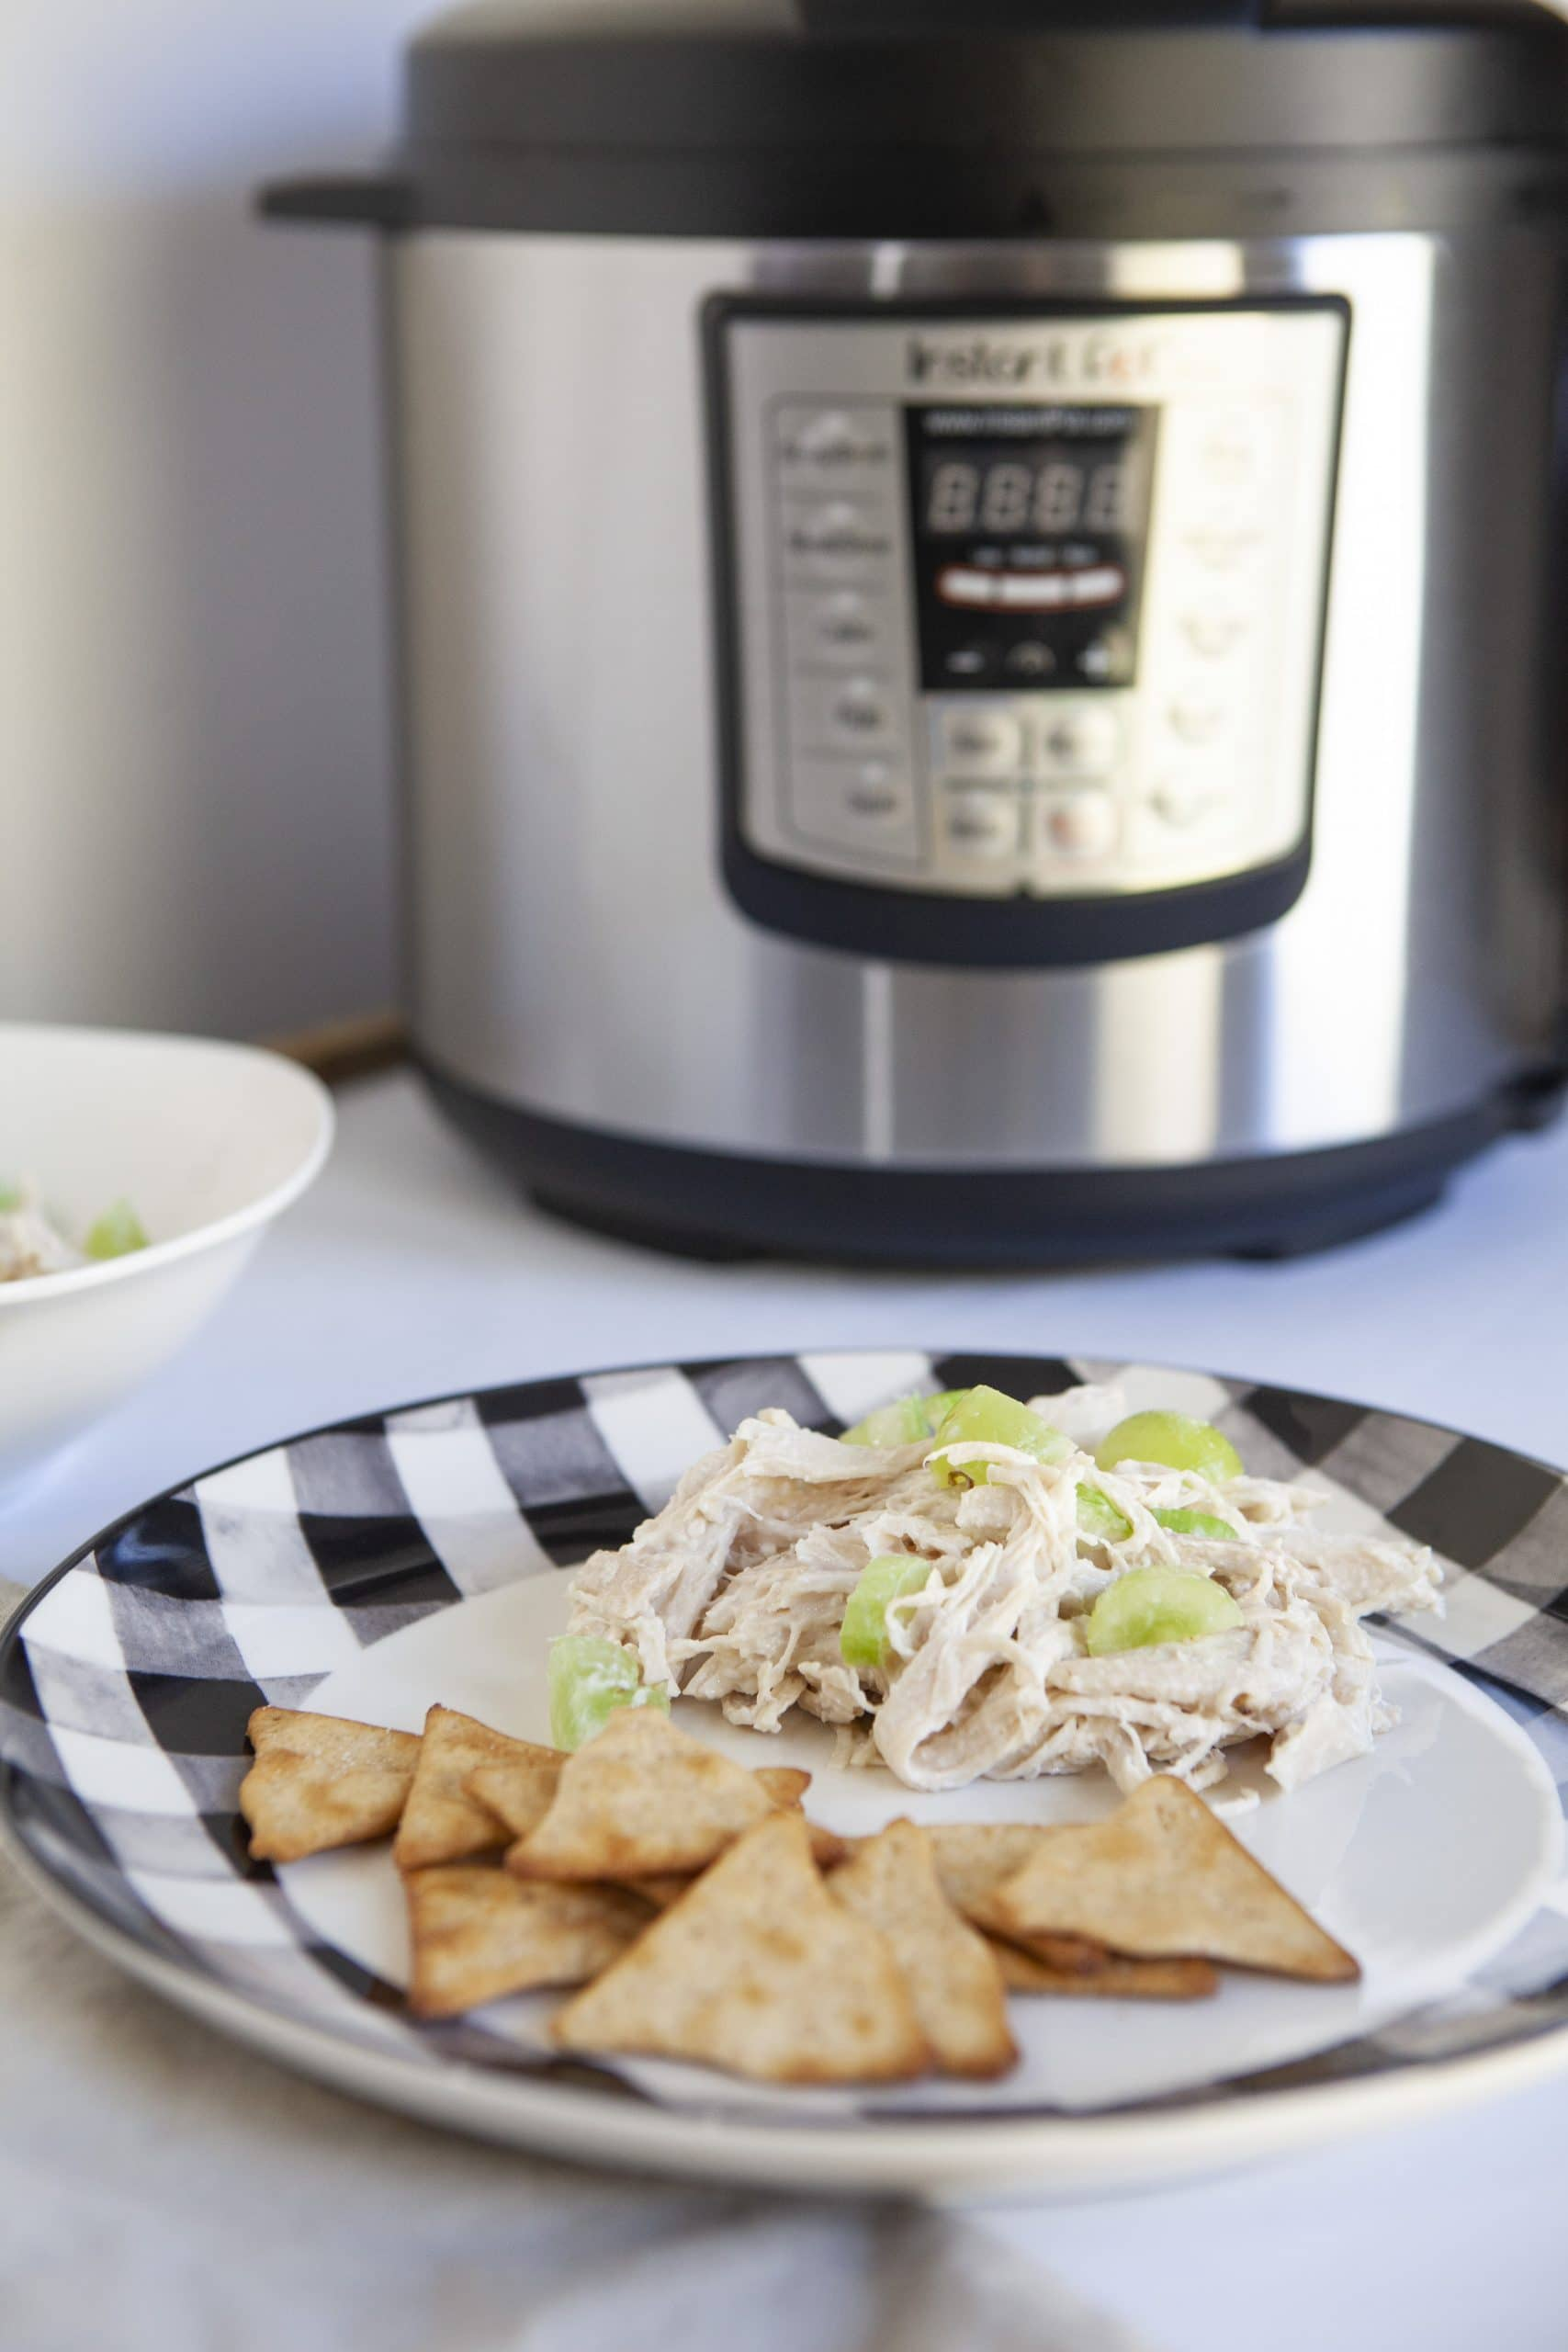 chicken salad in front of the instant pot